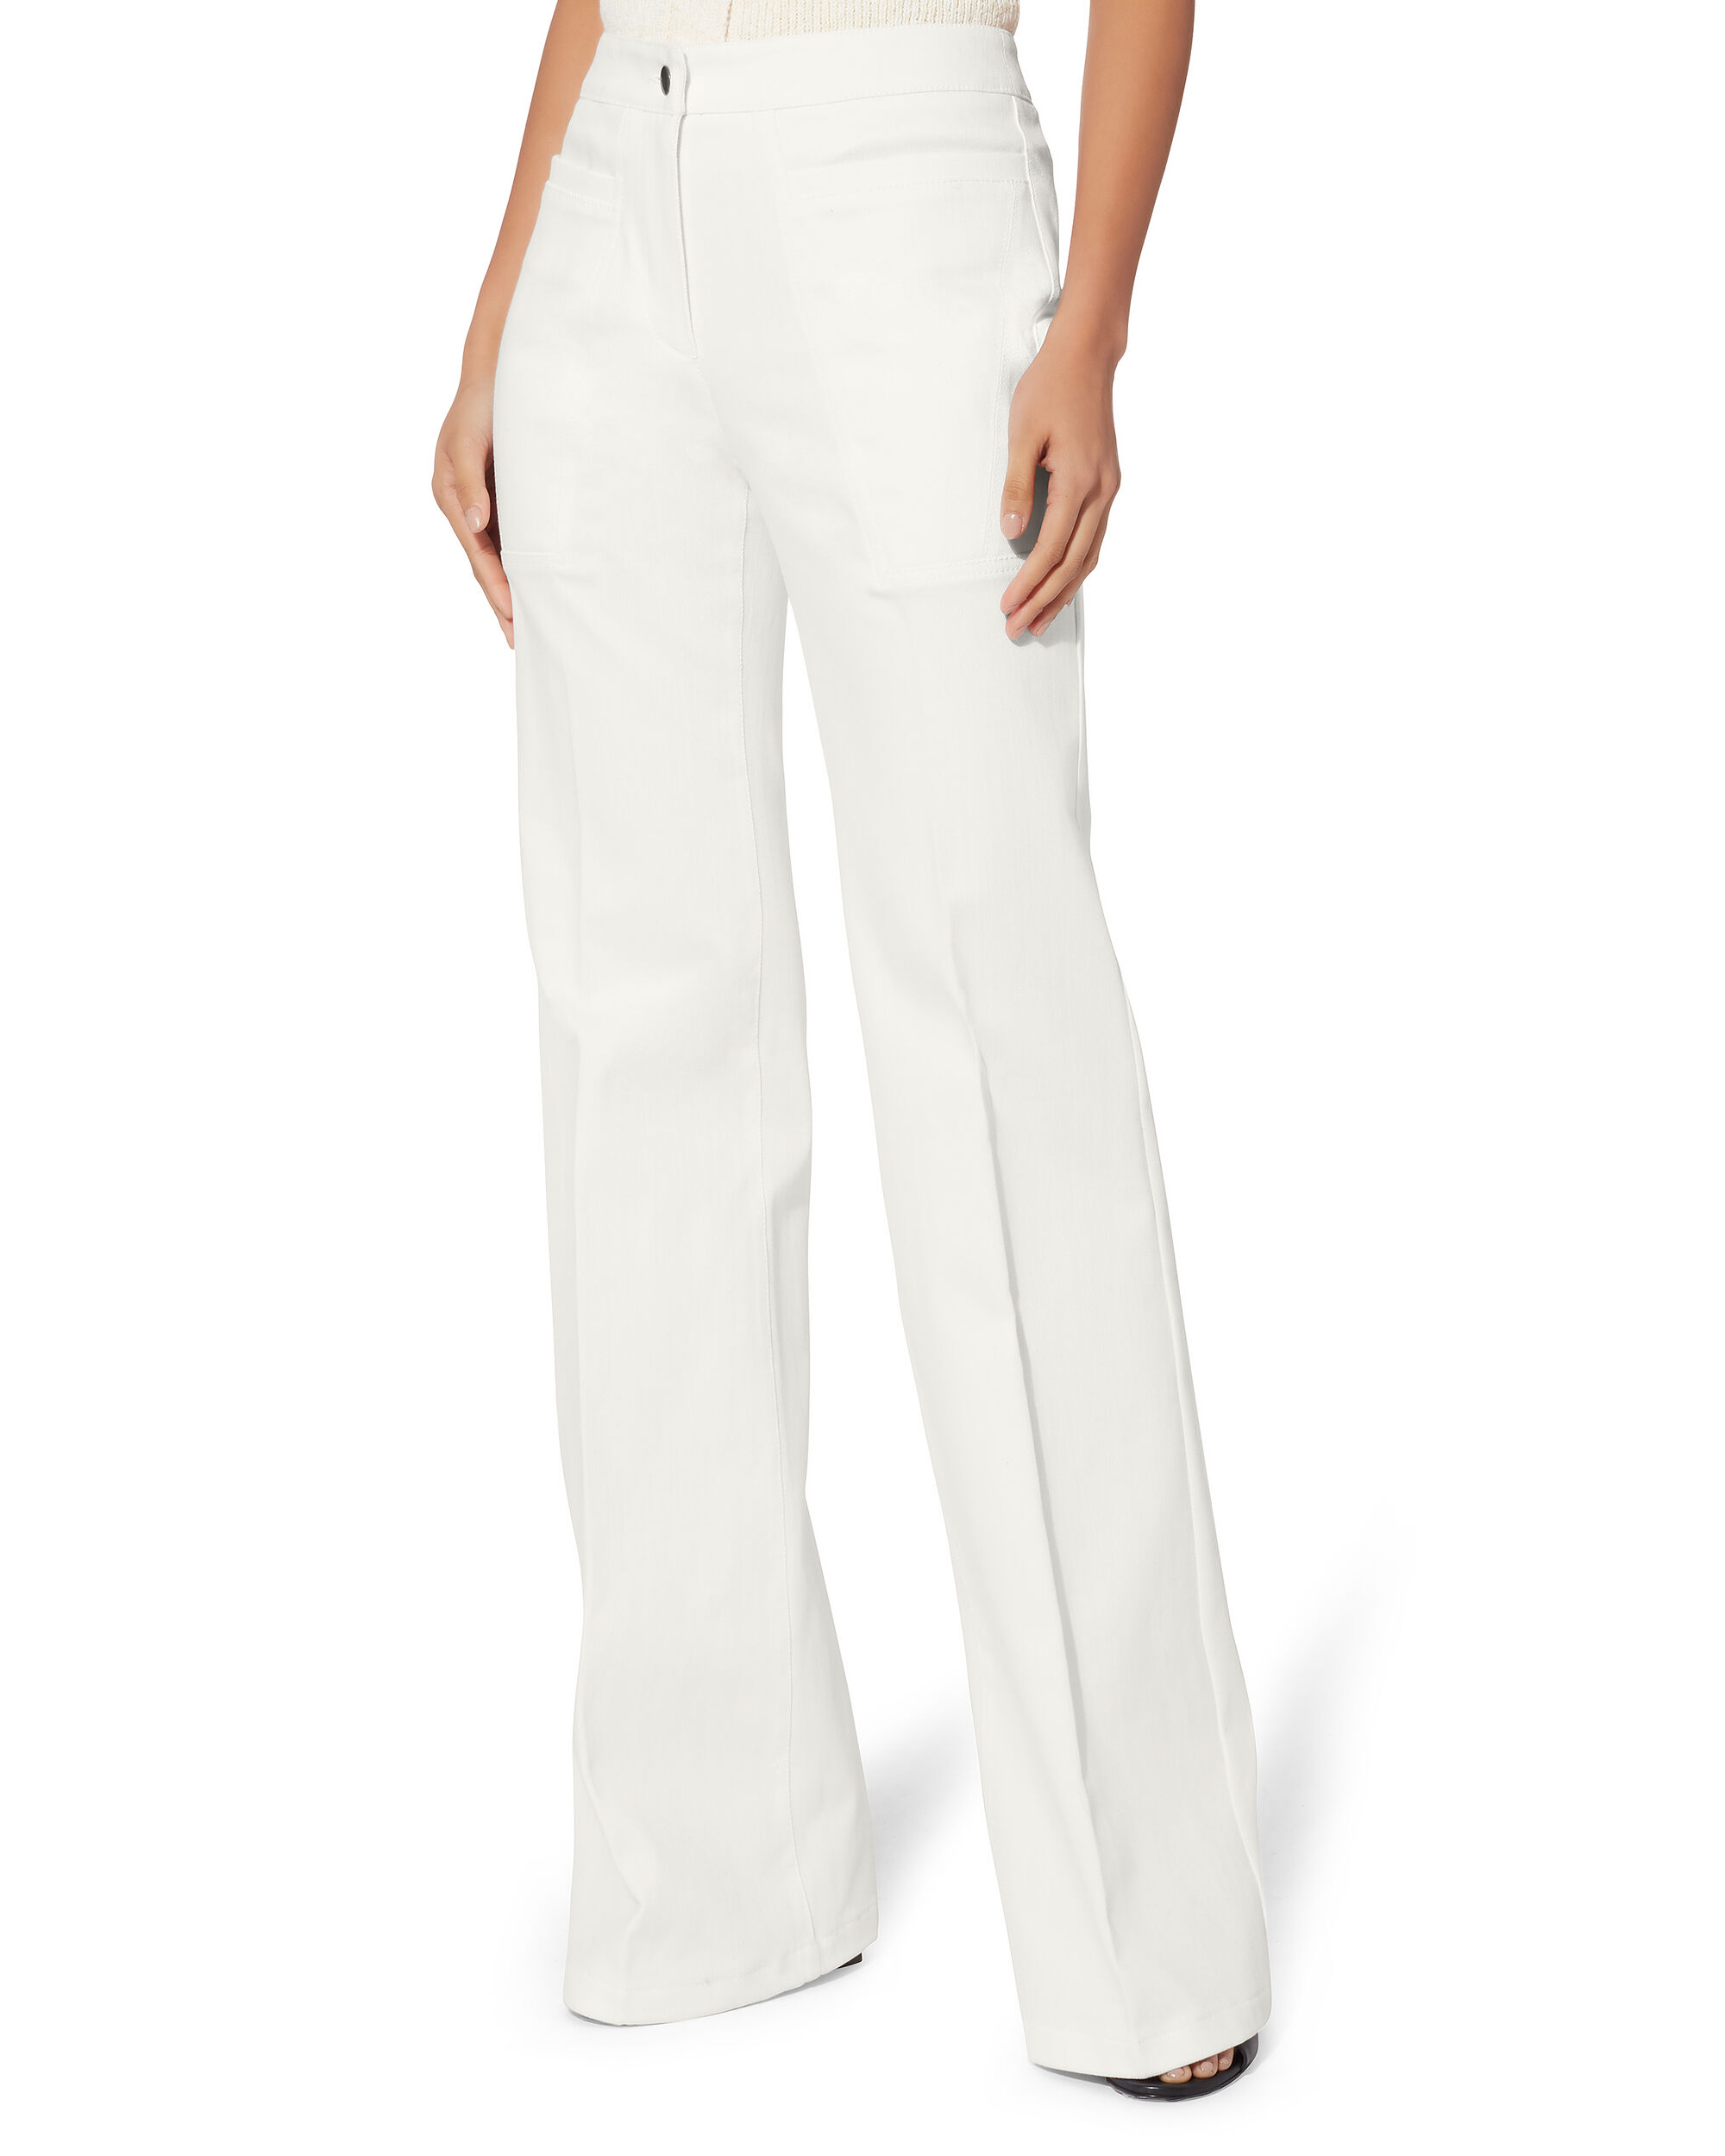 Charlotte High Waist Flare Jeans, WHITE, hi-res